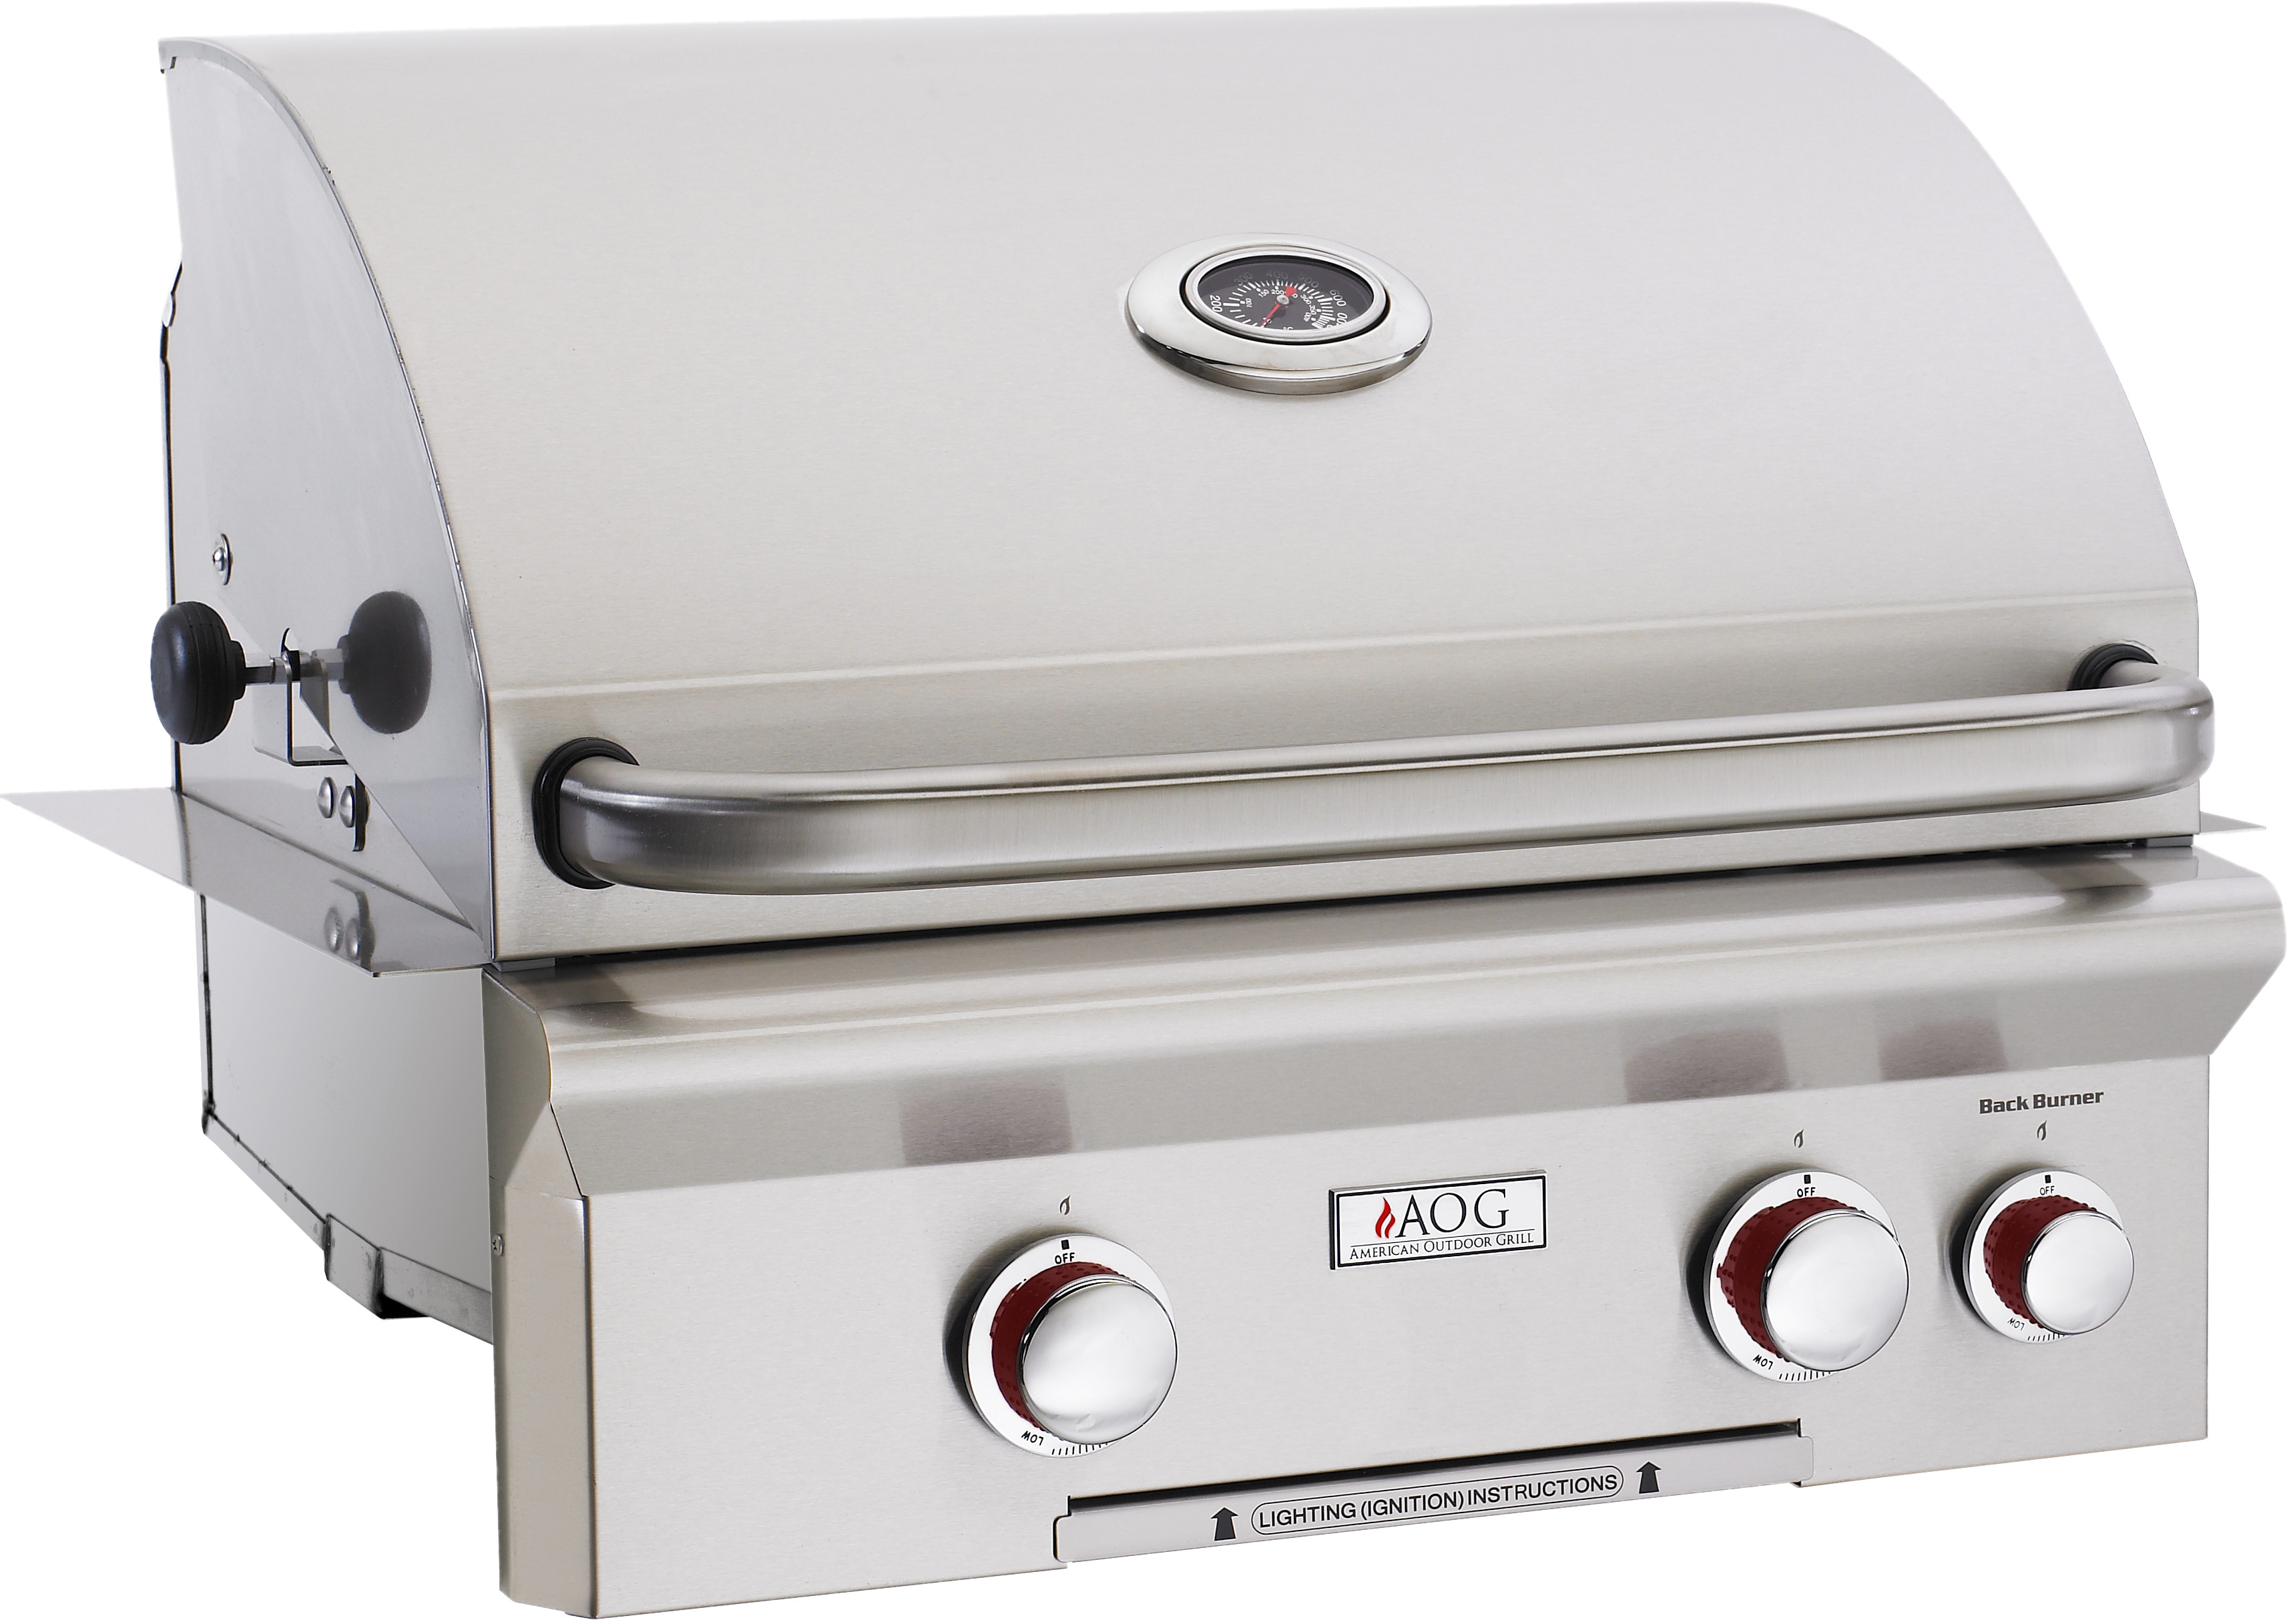 American Outdoor Grill 24nbt00sp 24 Inch Built In Gas With 432 Sq Cooking Surface 2 16 000 Btu Primary Burners Og Thermometer And Stainless